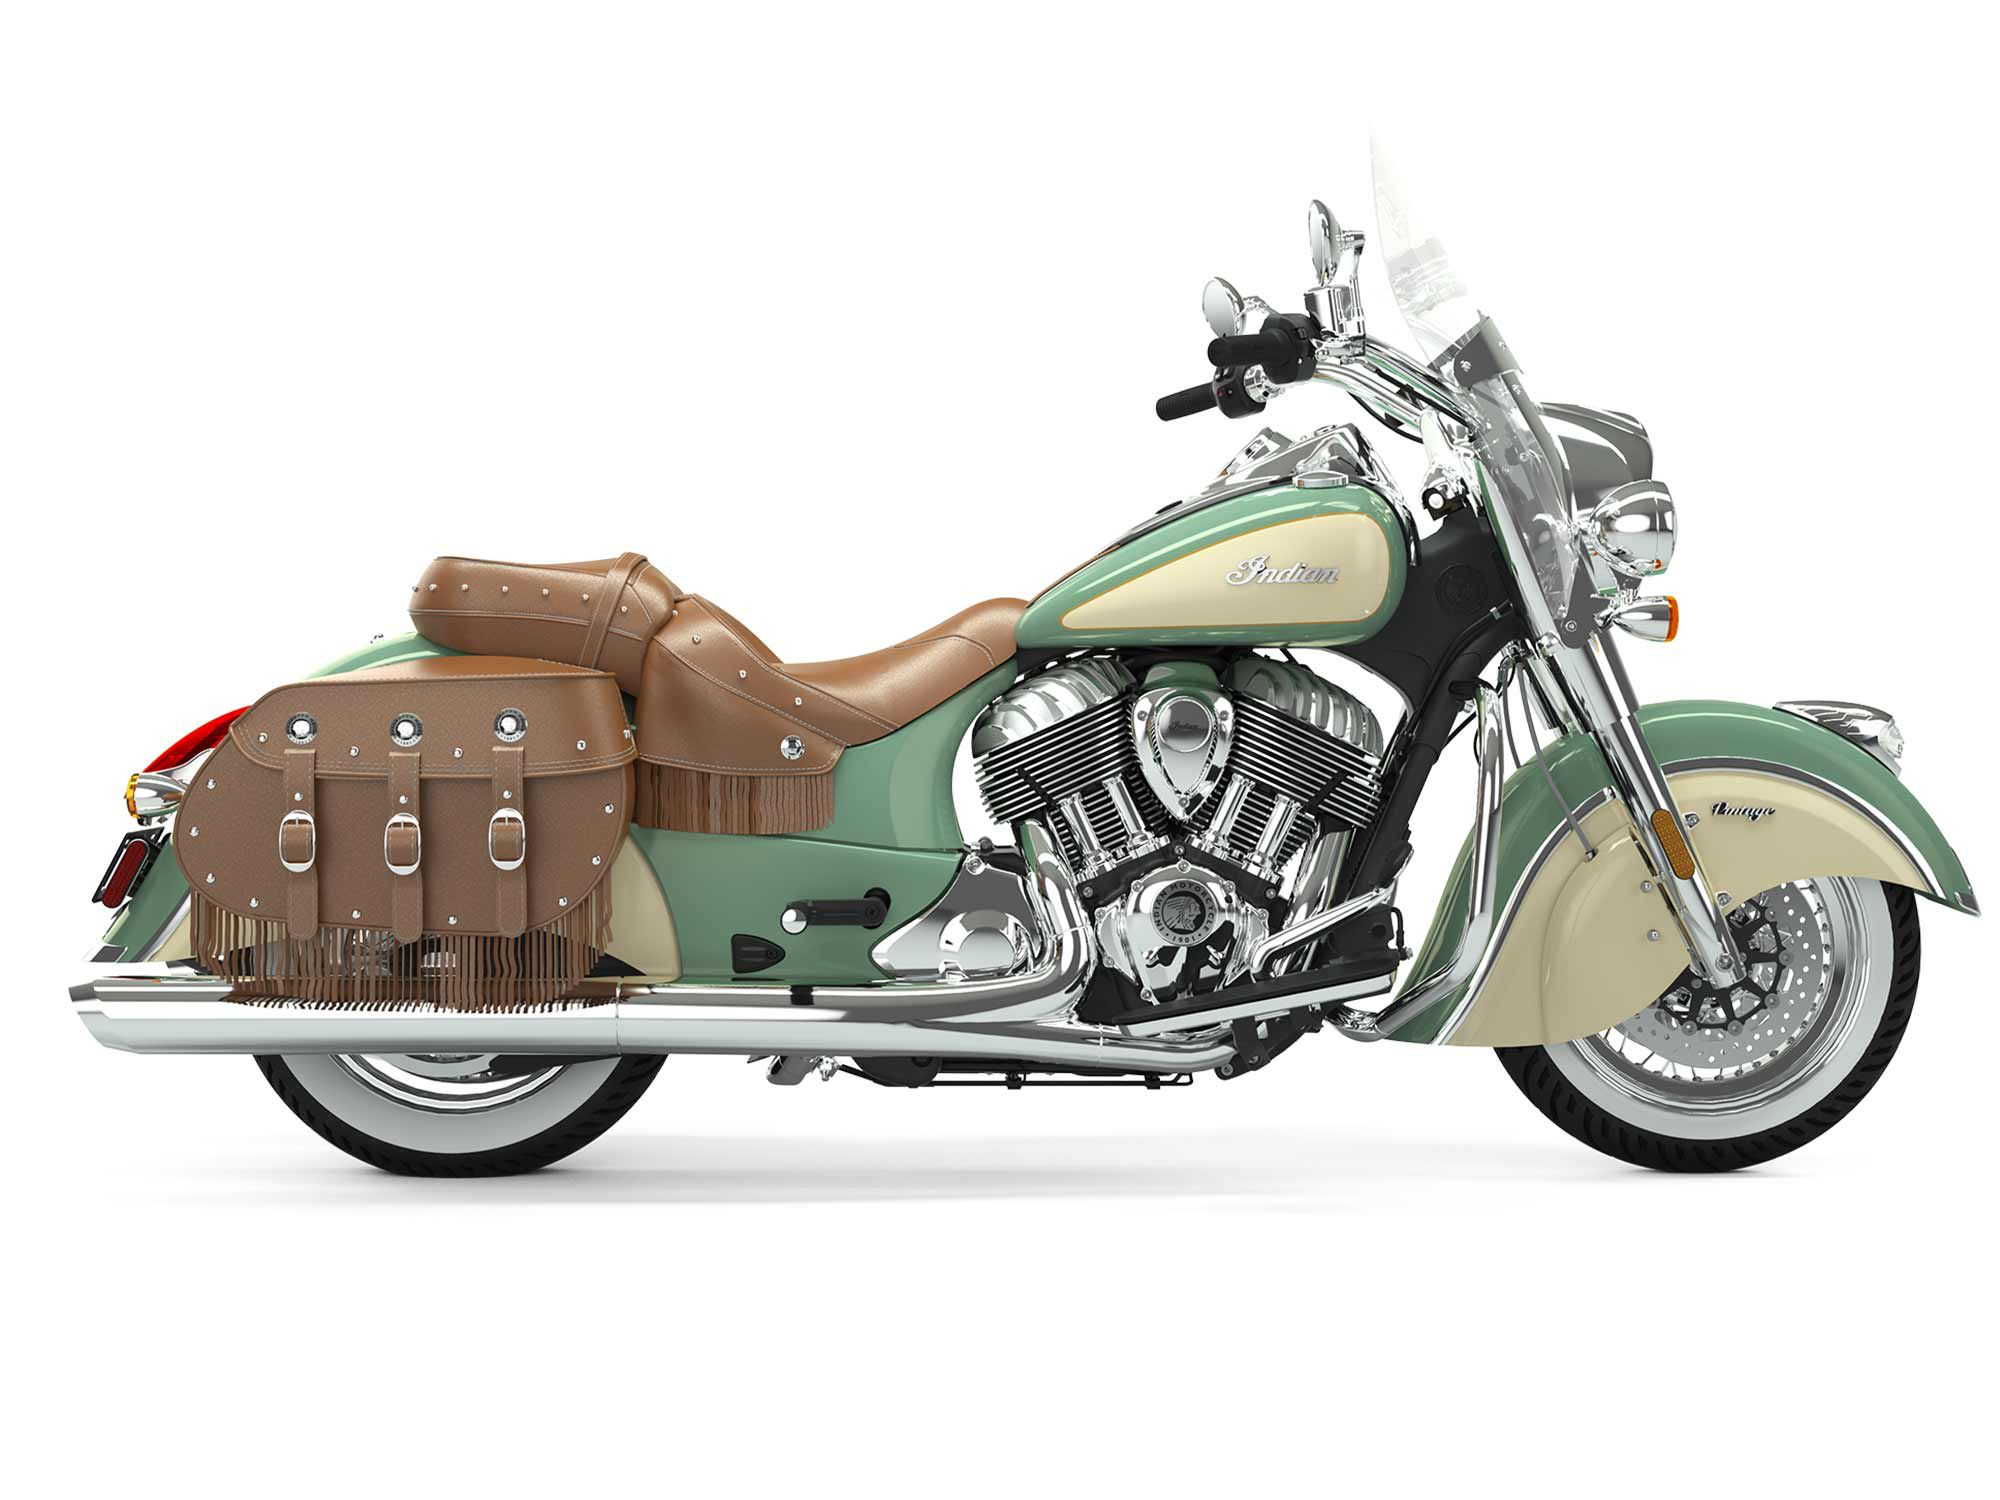 2020 Indian Chief Vintage Cycle World